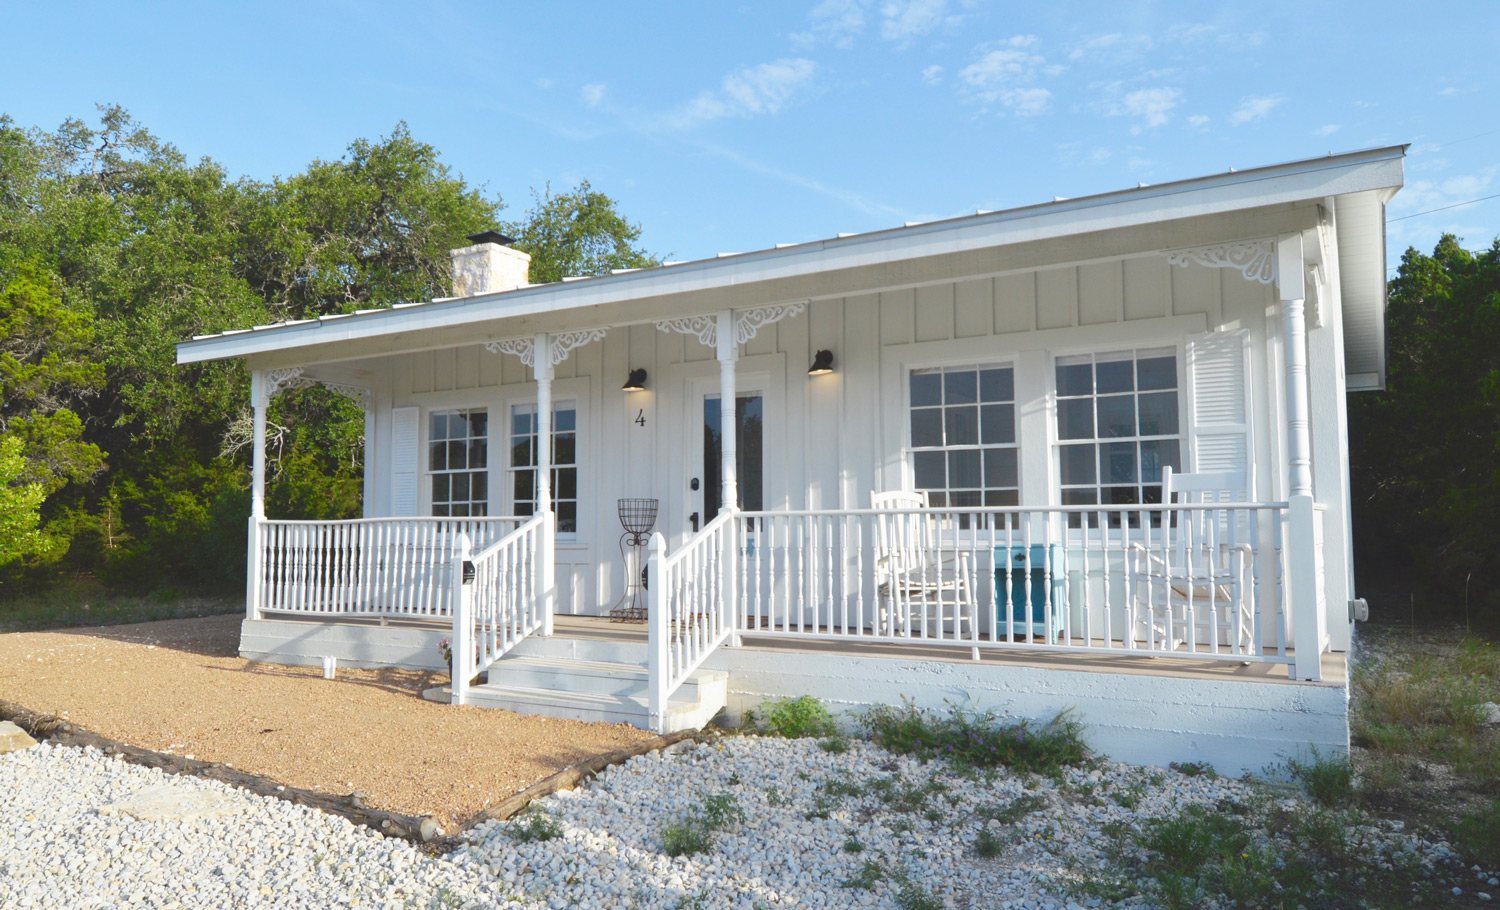 texas cottages home back gallery park porch wimberley pin model casual